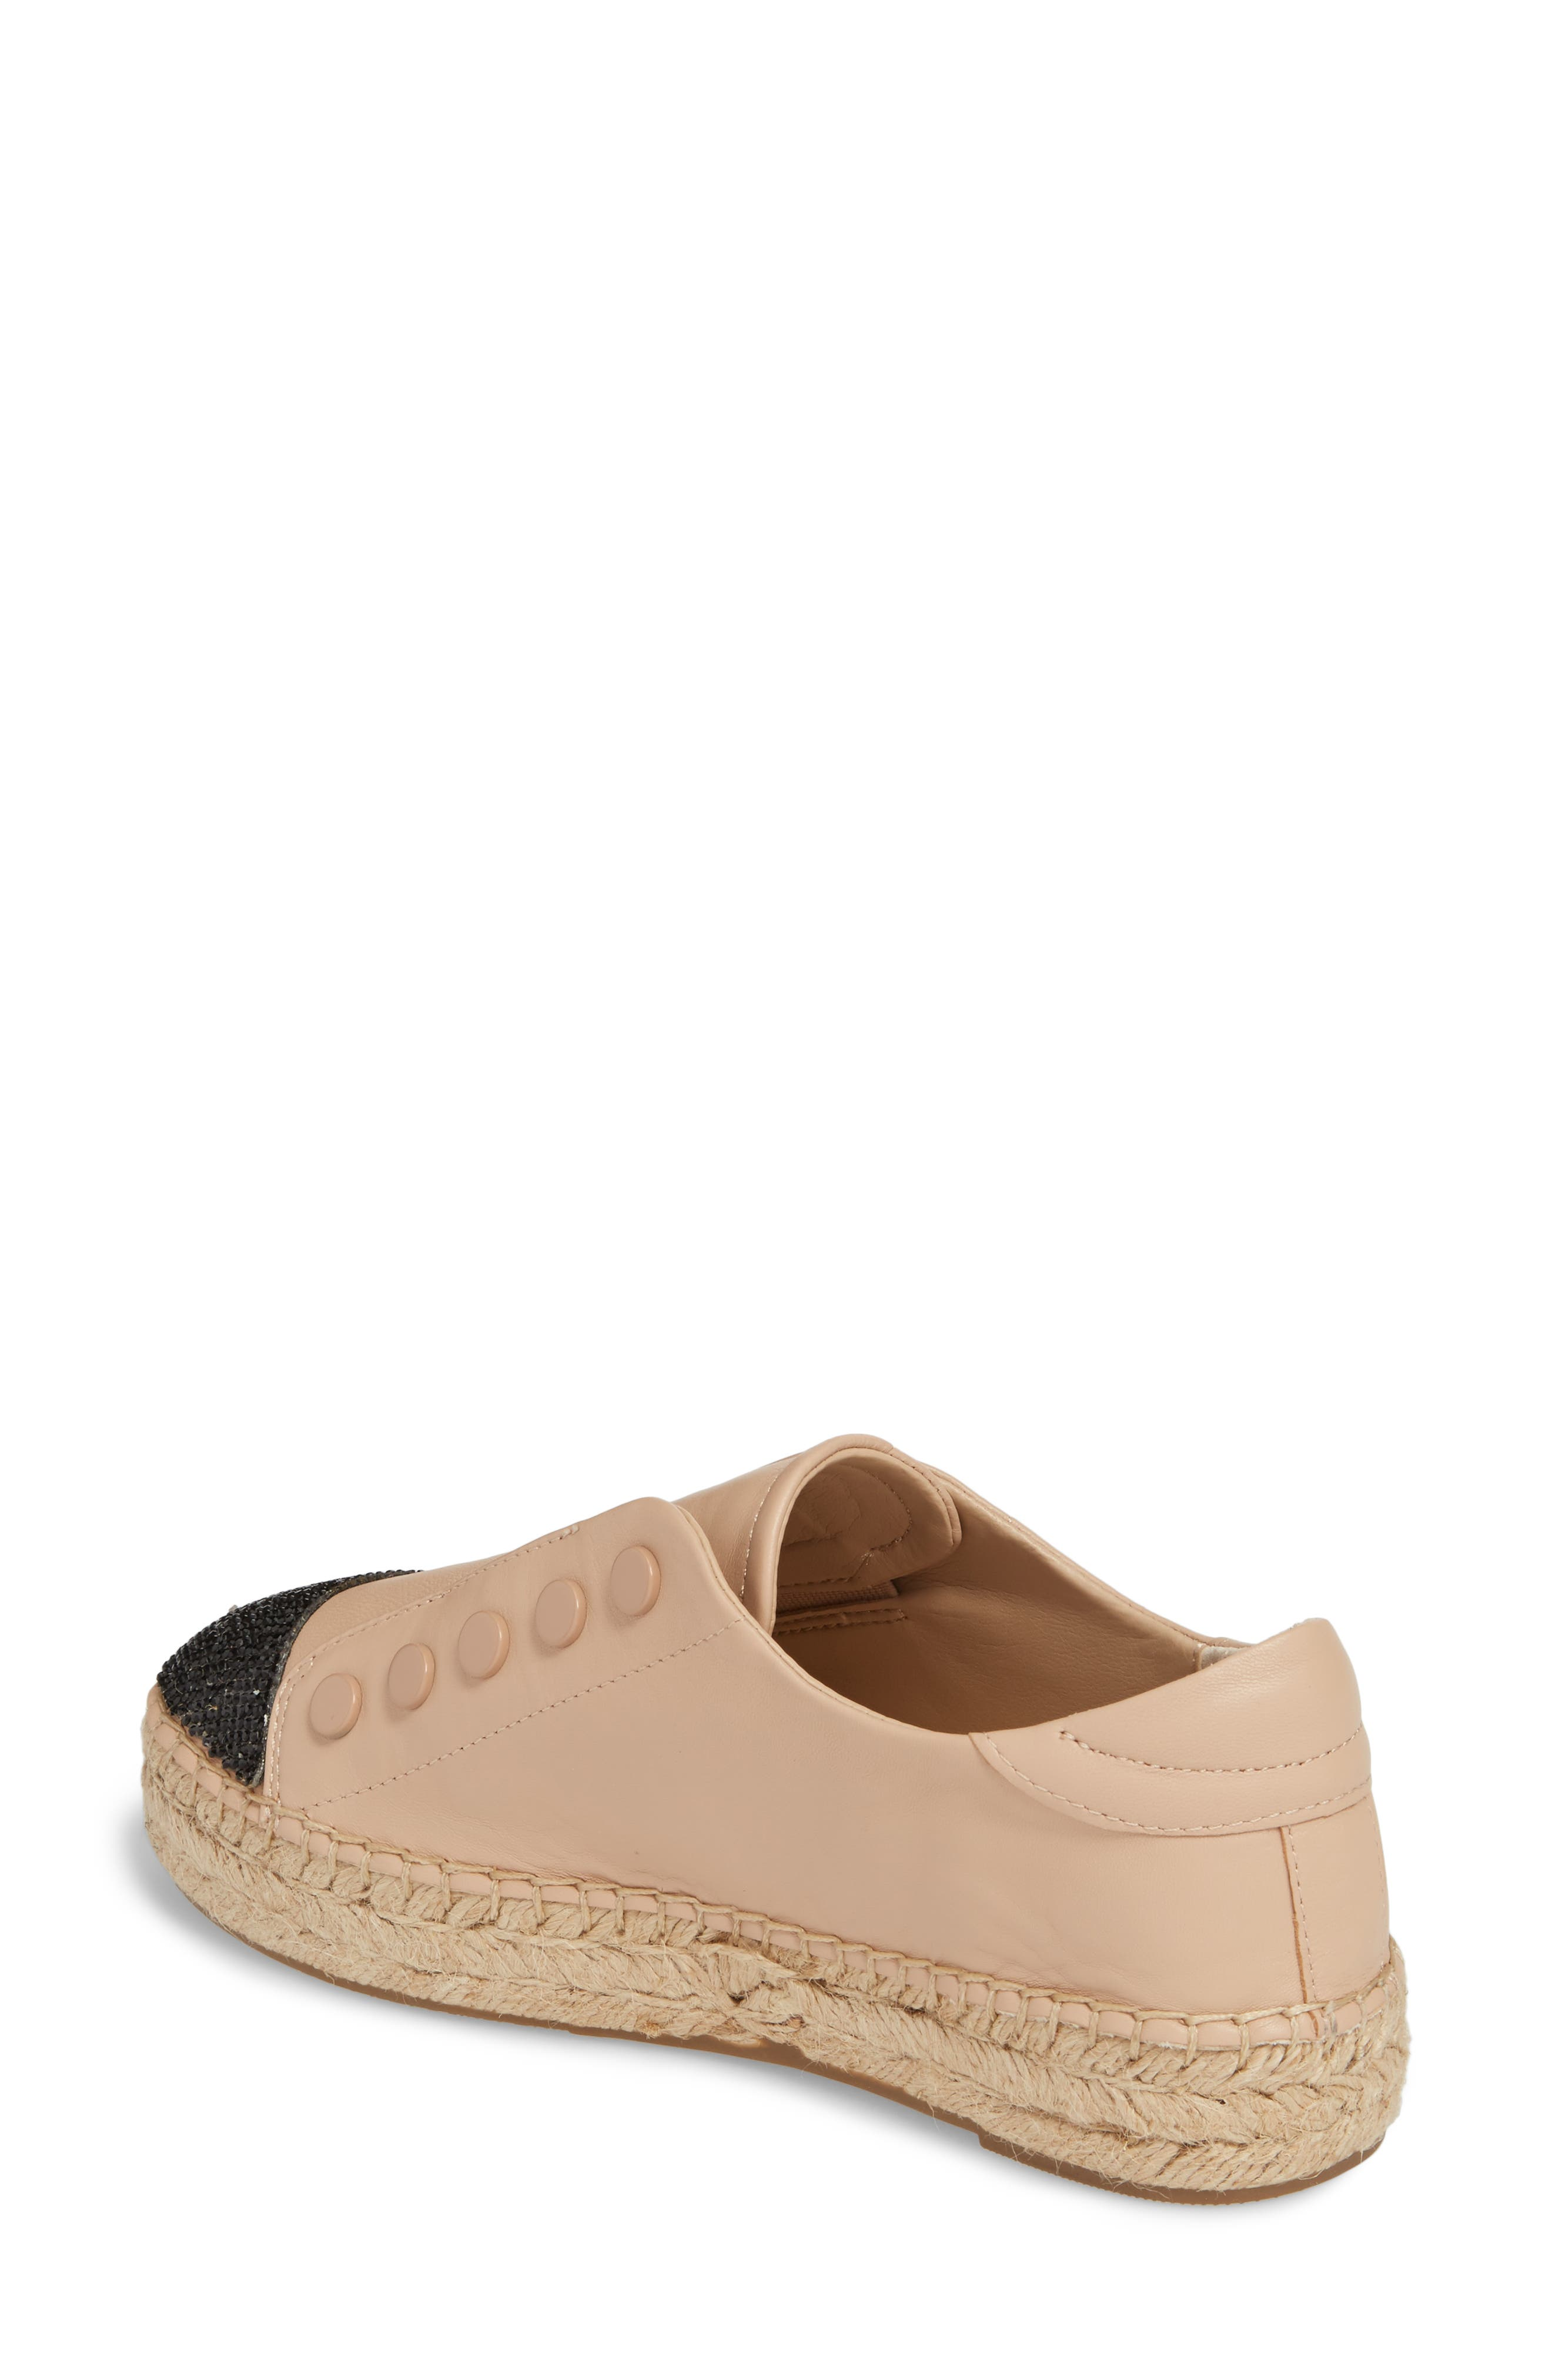 Juniper Espadrille Sneaker,                             Alternate thumbnail 2, color,                             Light Latte